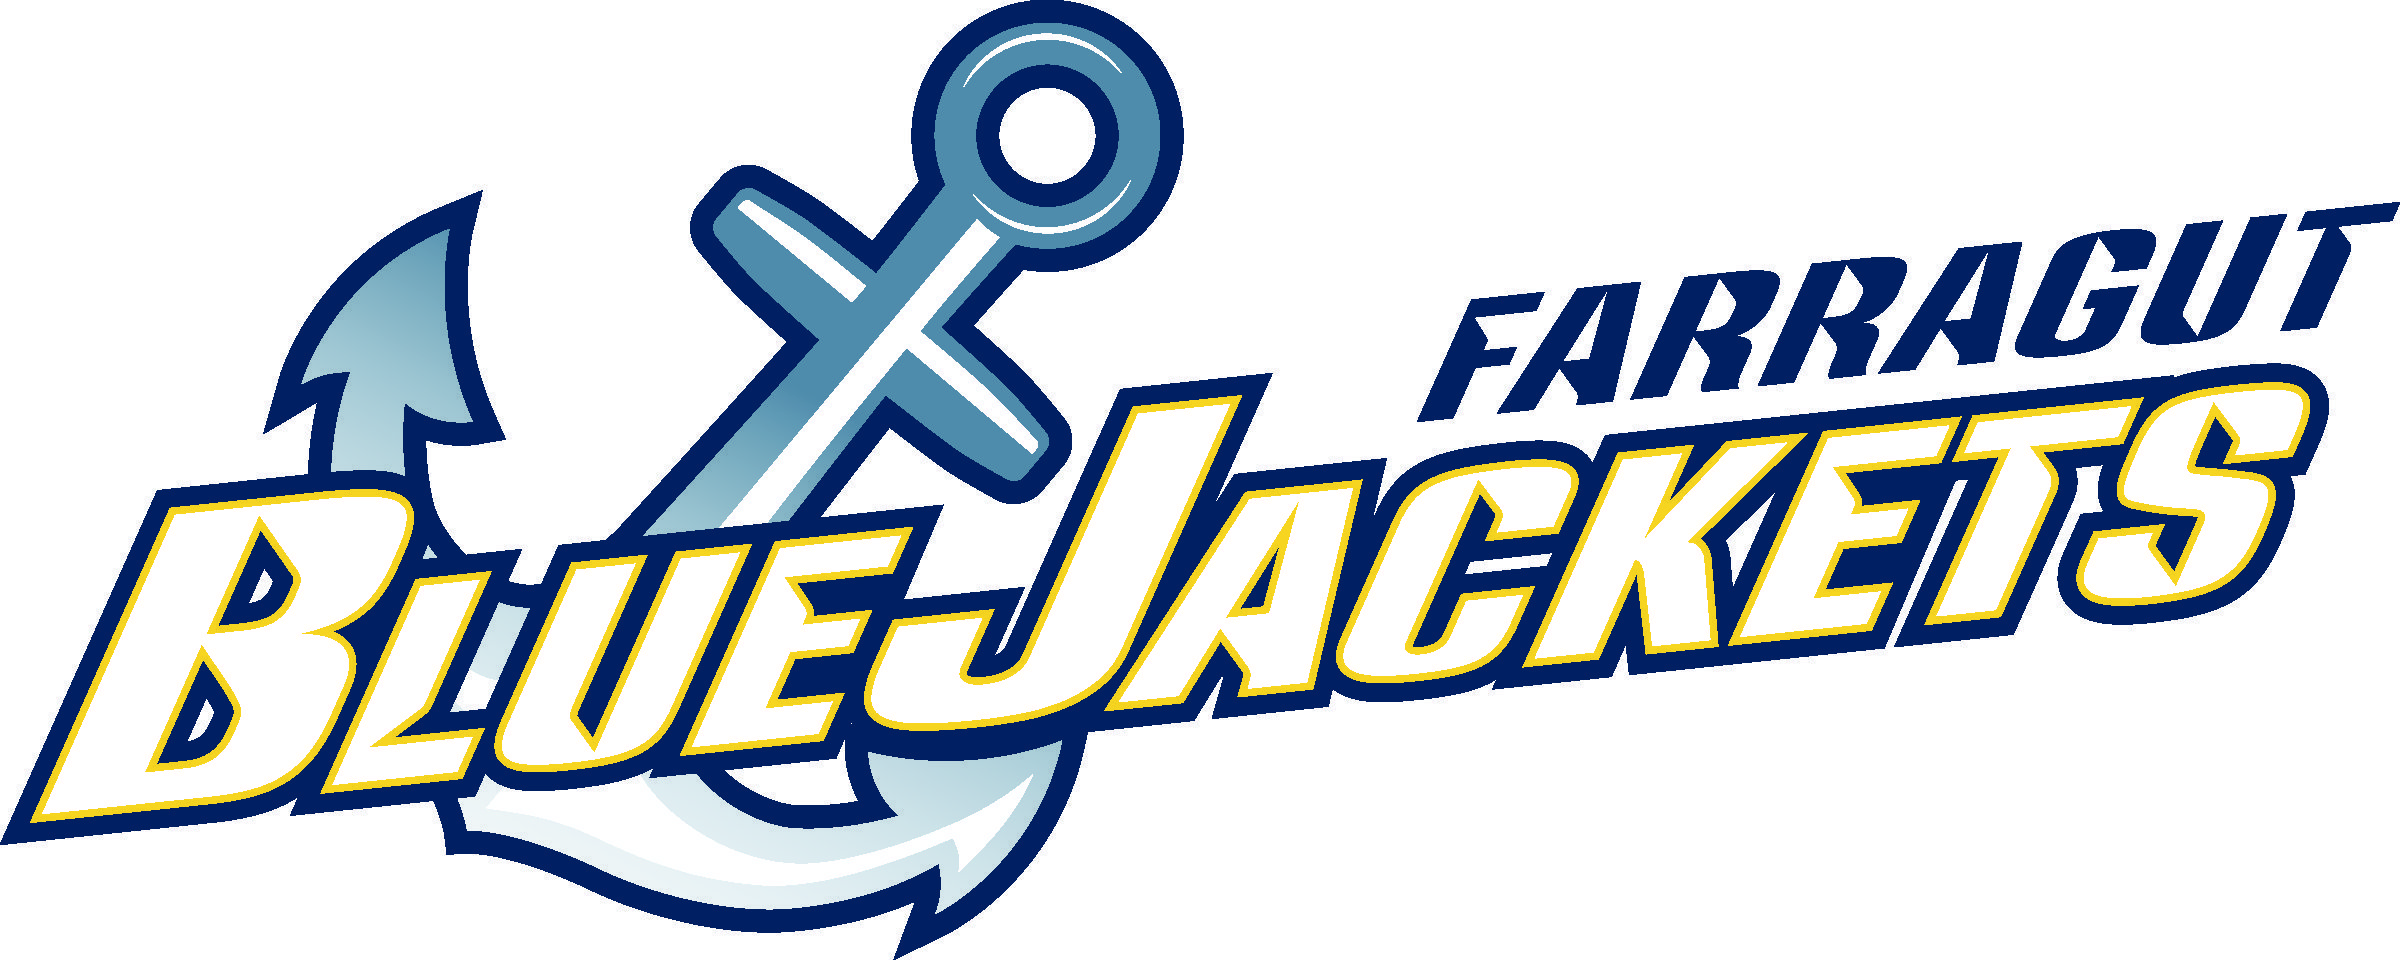 The Admiral Farragut Academy Bluejackets were named 21st best high school mascot in Florida by Aceable Drivers Ed